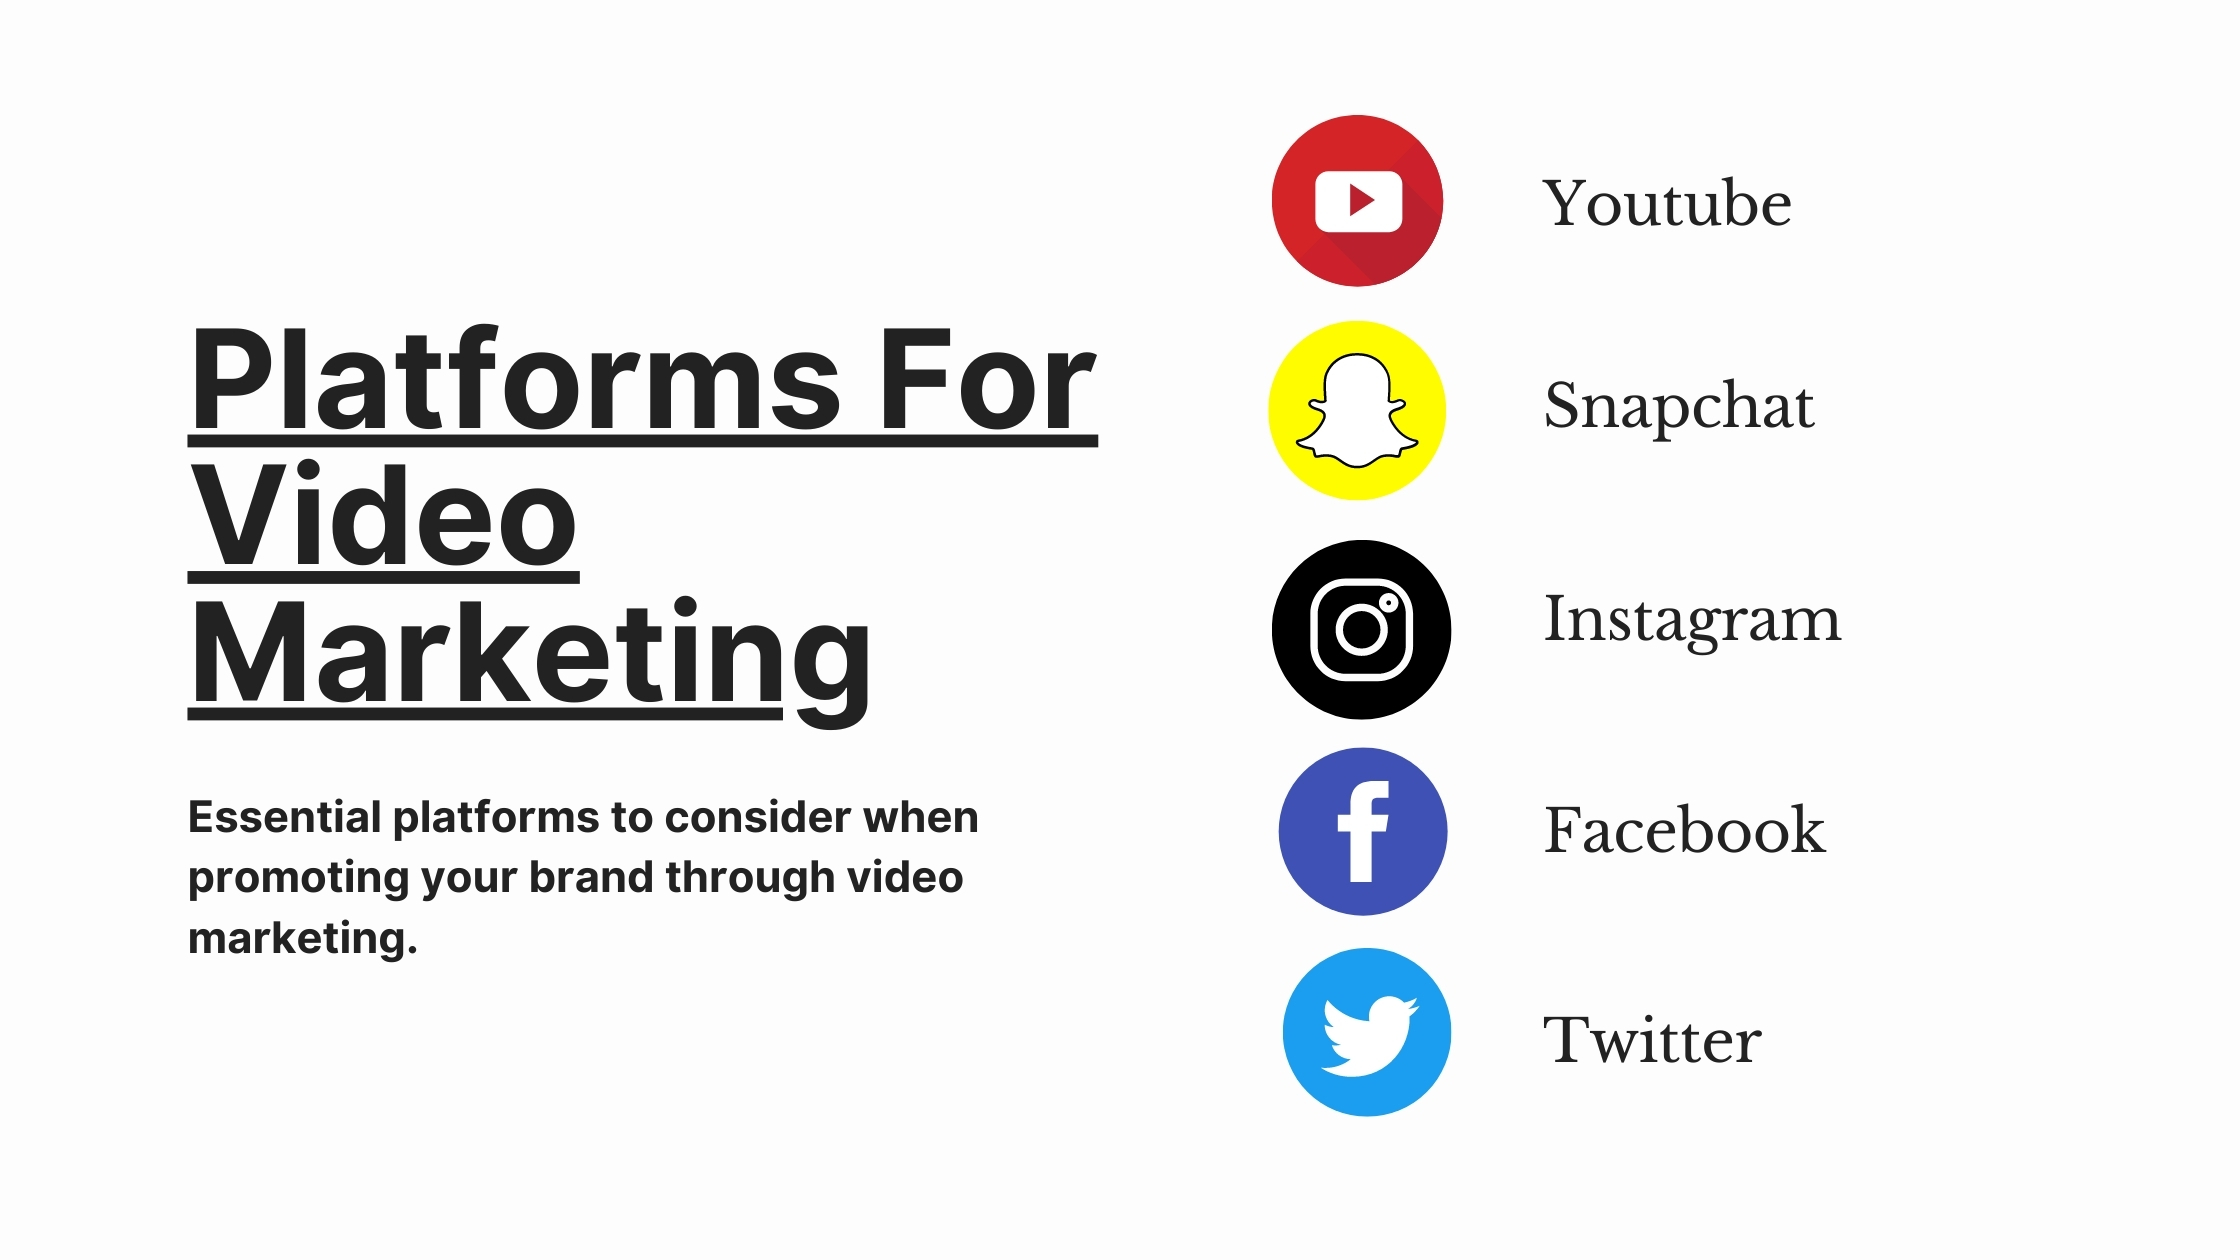 video marketing platforms to consider when promoting your brand through video marketing or digital marketing